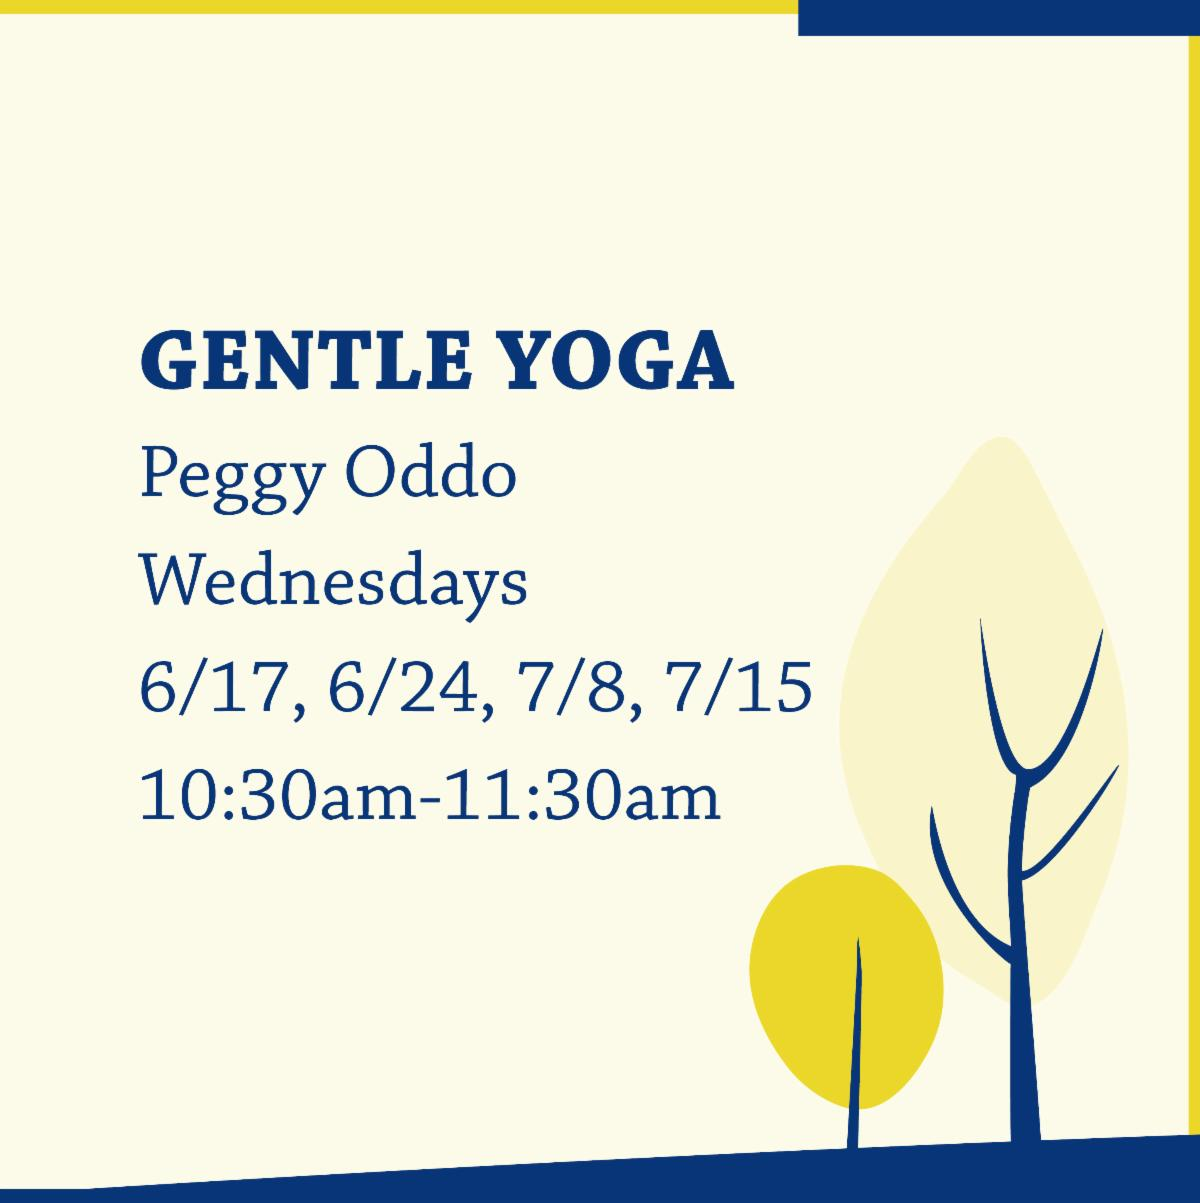 Gentle Yoga with Peggy Oddo on Wednesdays from 10:30am-11:30am